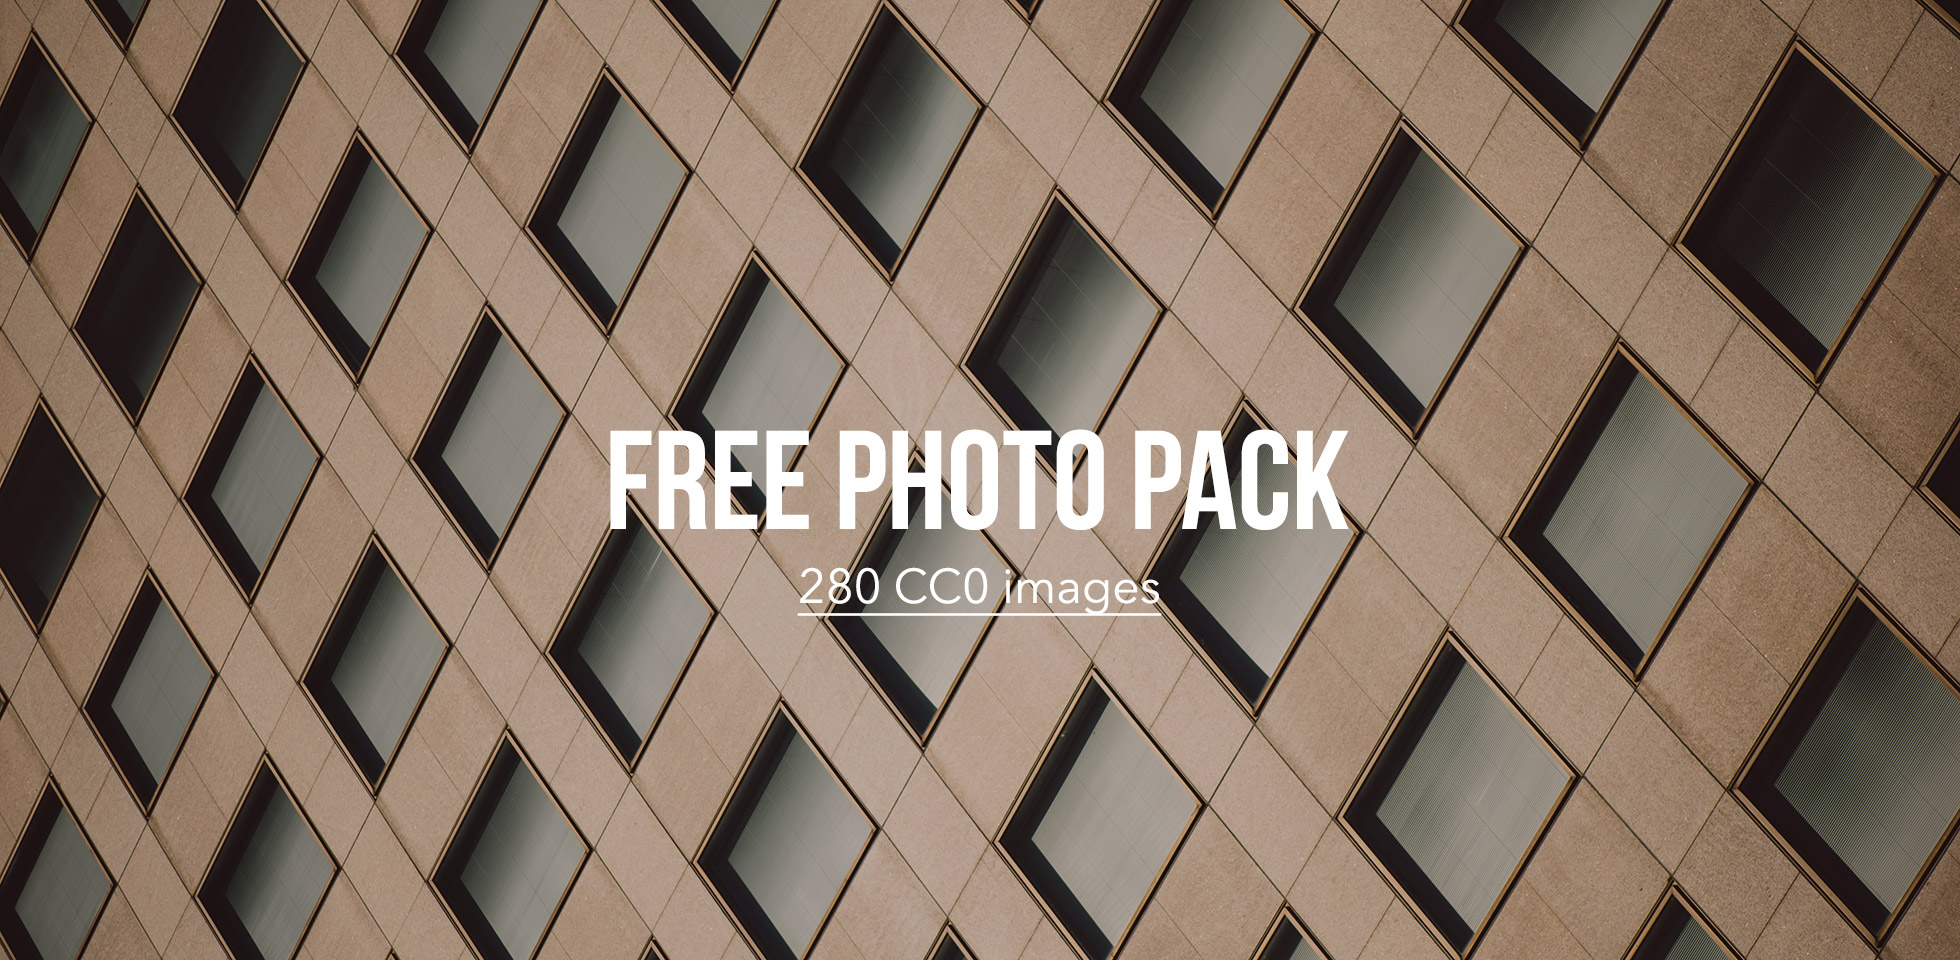 Free Download: Huge Photo Pack